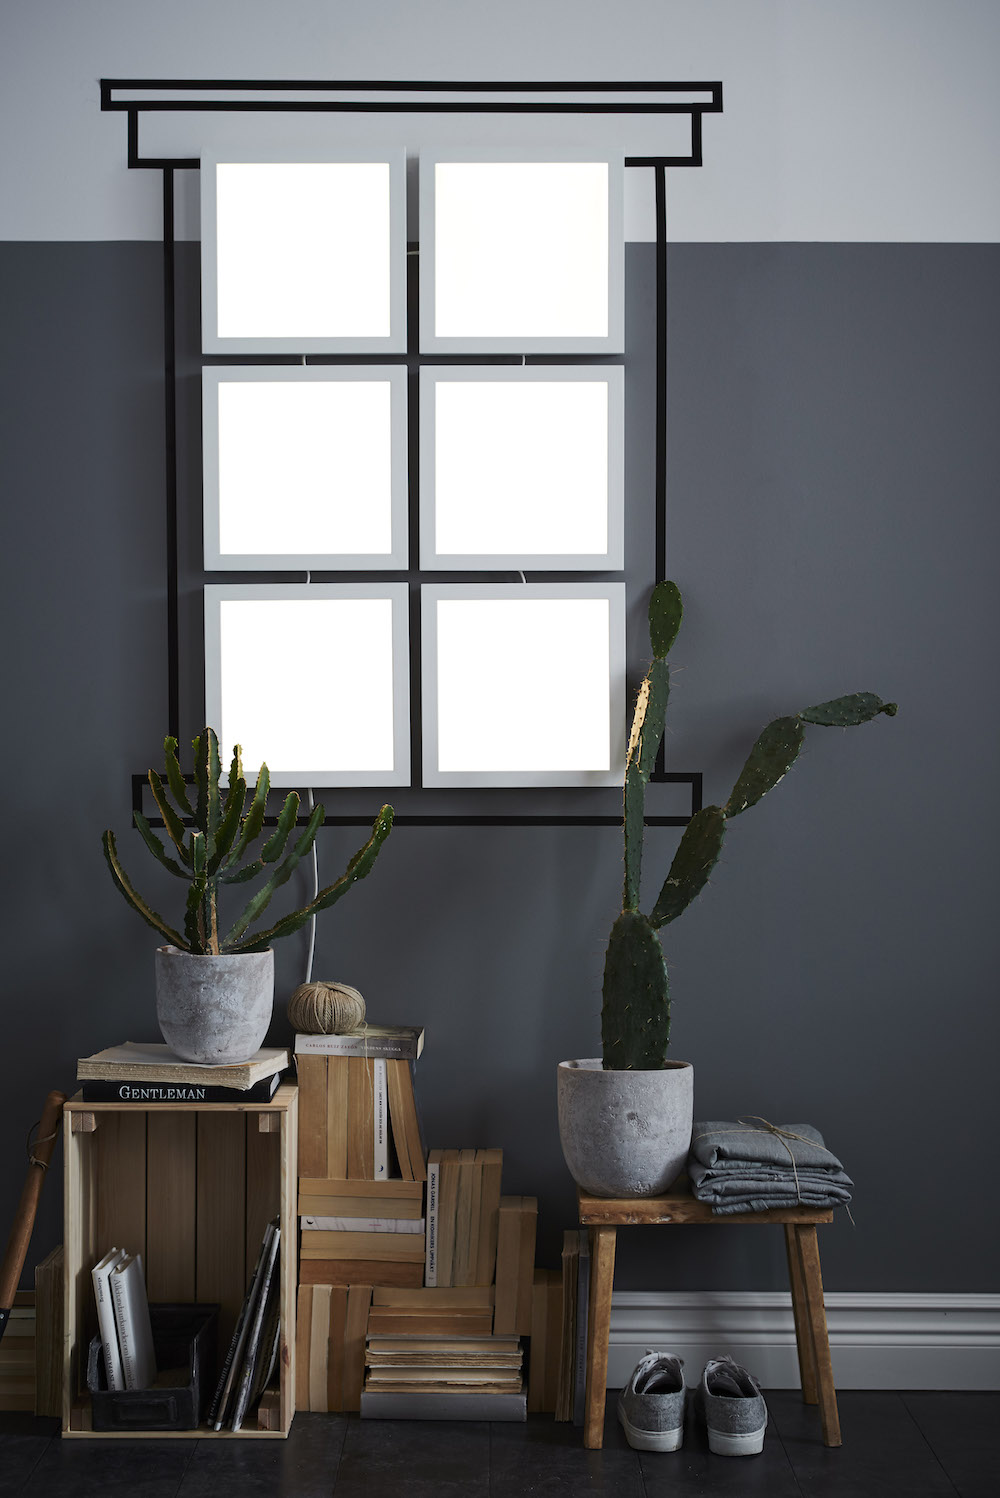 Ikea smart lighting collection - dimbare verlichting panelen